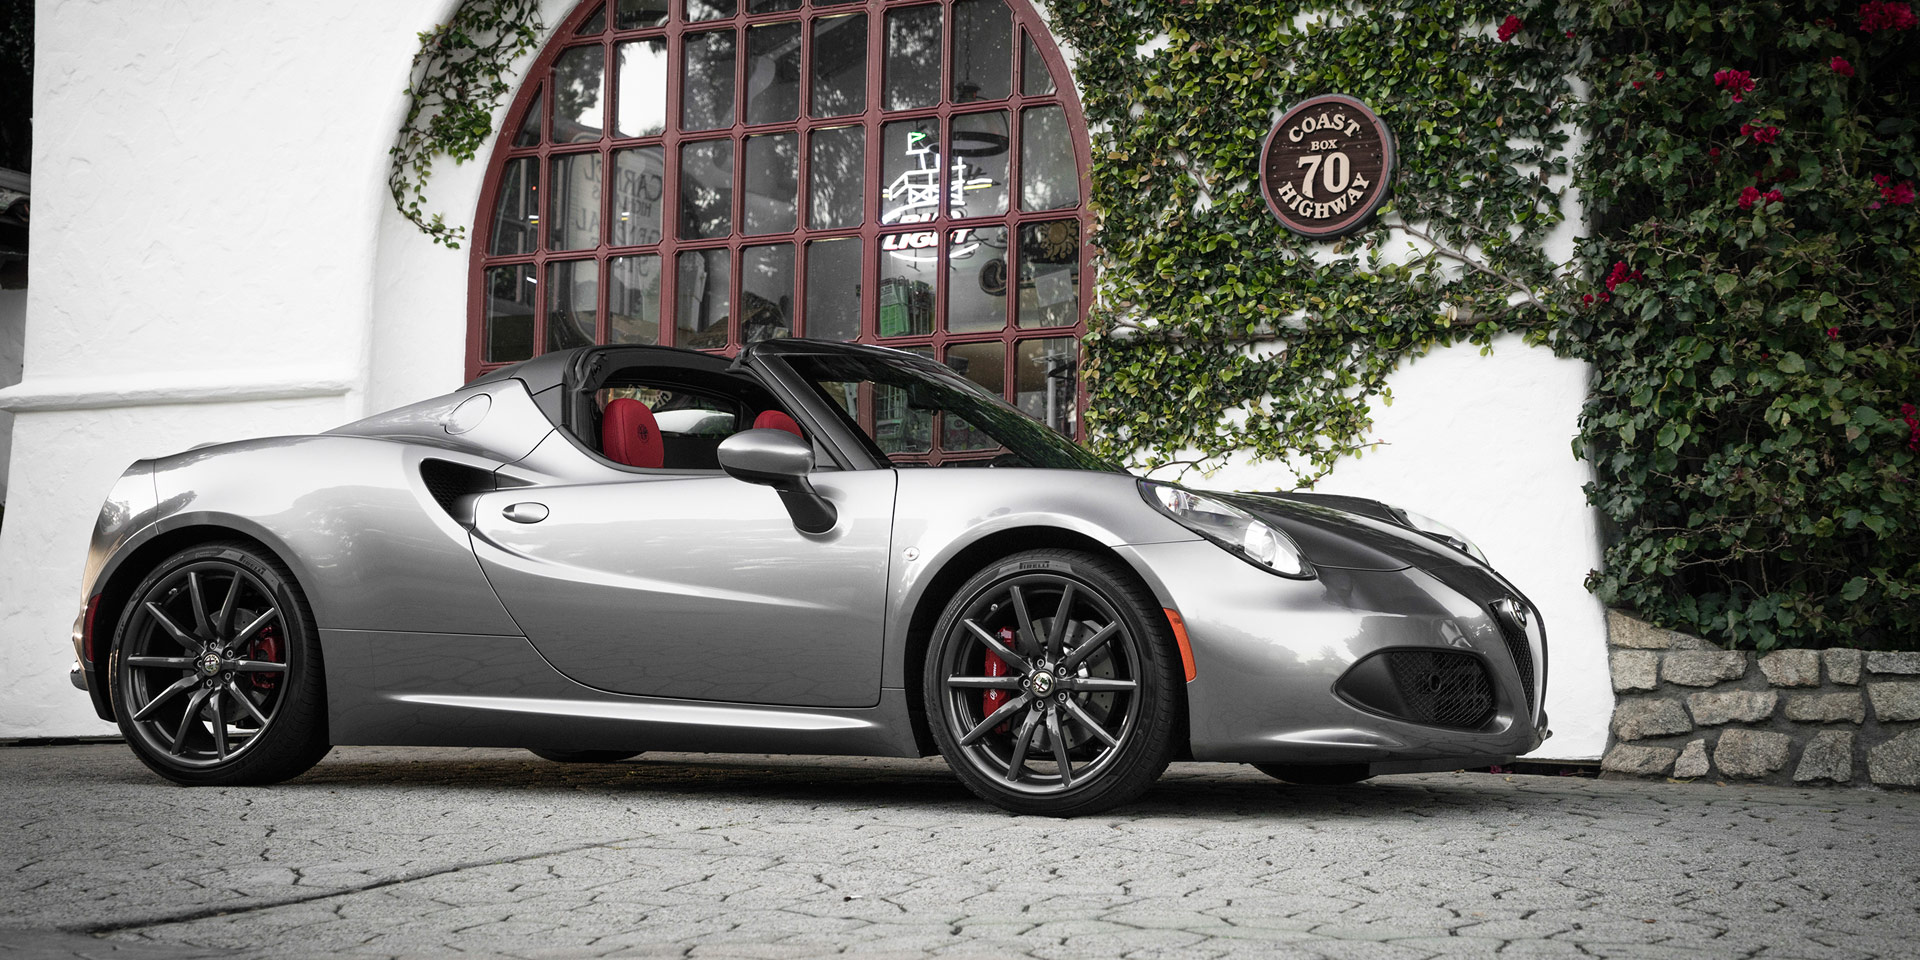 2018 alfa romeo 4c vehicles on display chicago. Black Bedroom Furniture Sets. Home Design Ideas